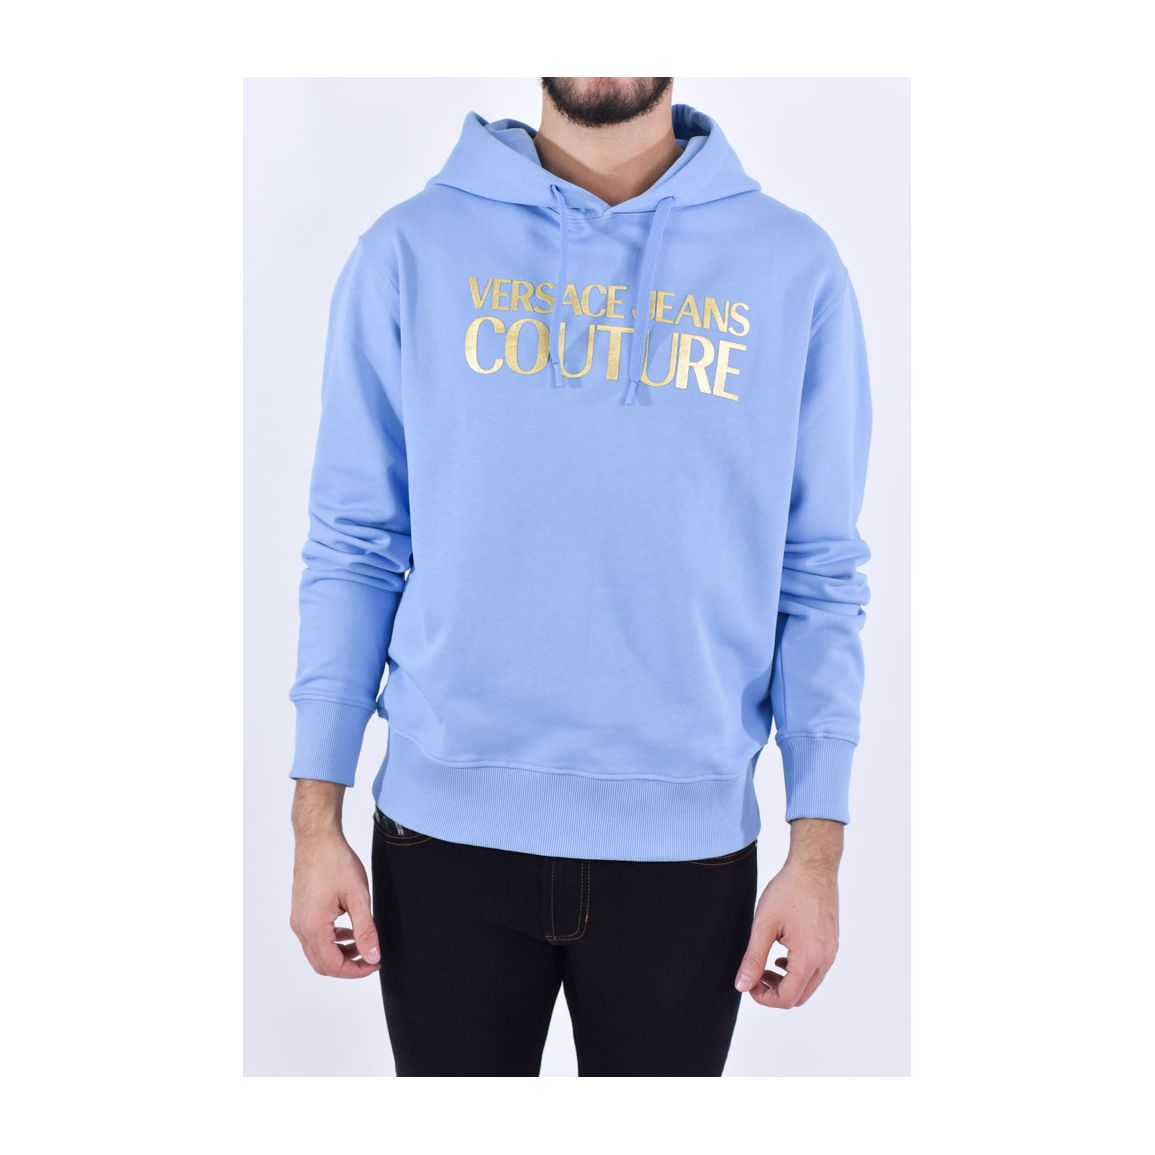 VERSACE JEANS COUTURE B7GWA7TP30318216